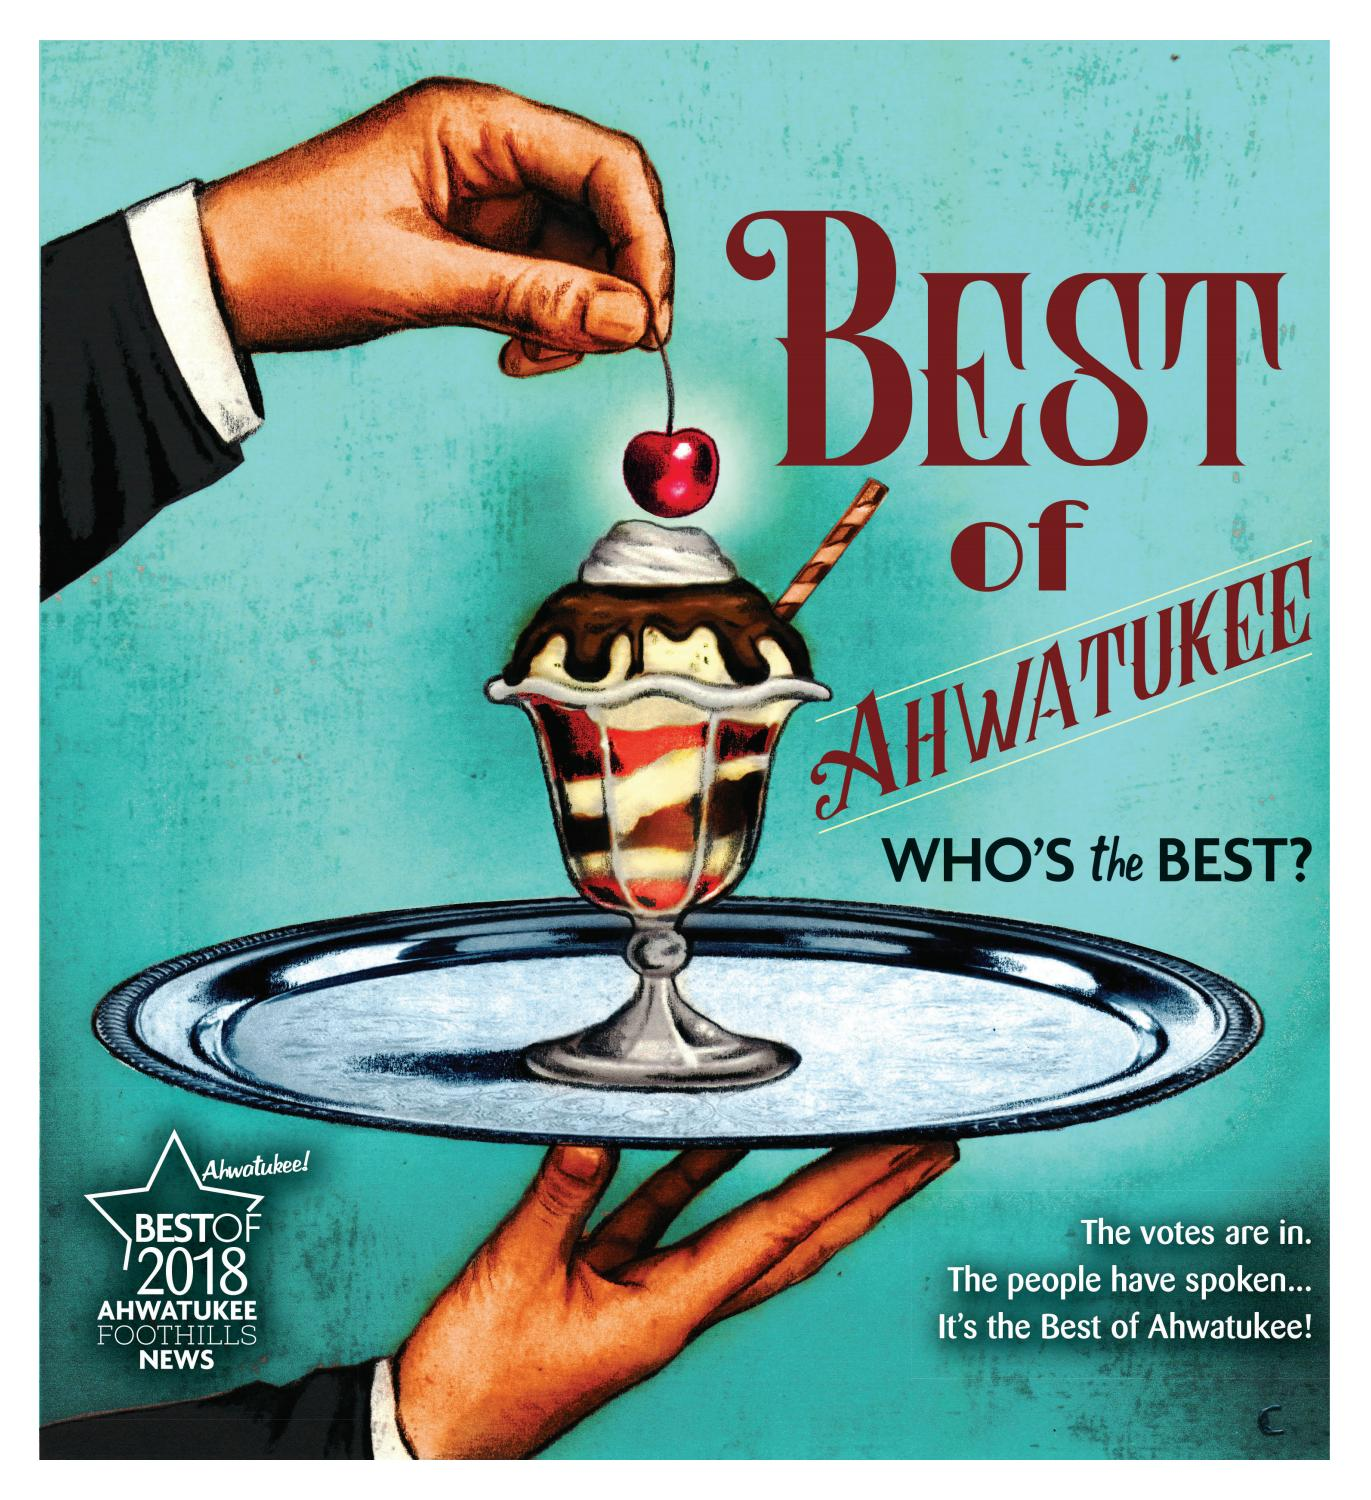 Best of Ahwatukee 2019 by Times Media Group - issuu